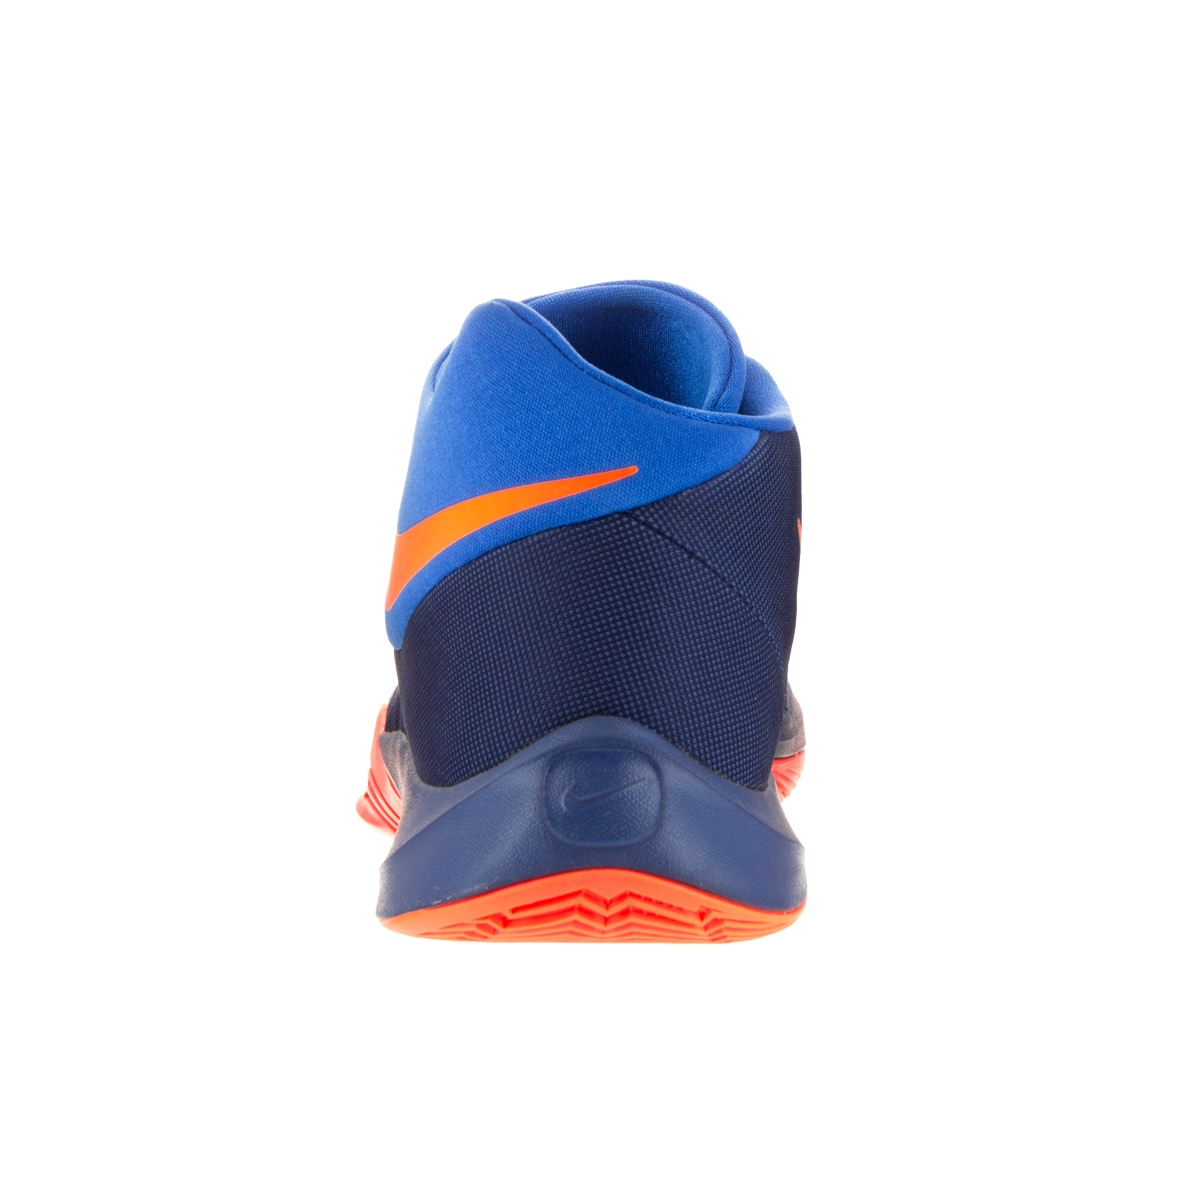 3d4b0595cc0a Shop Nike Men s Zoom Hyperquickness 2015 Insignia Blue Bright Citrus Sr  Basketball Shoe - Free Shipping Today - Overstock - 13393996